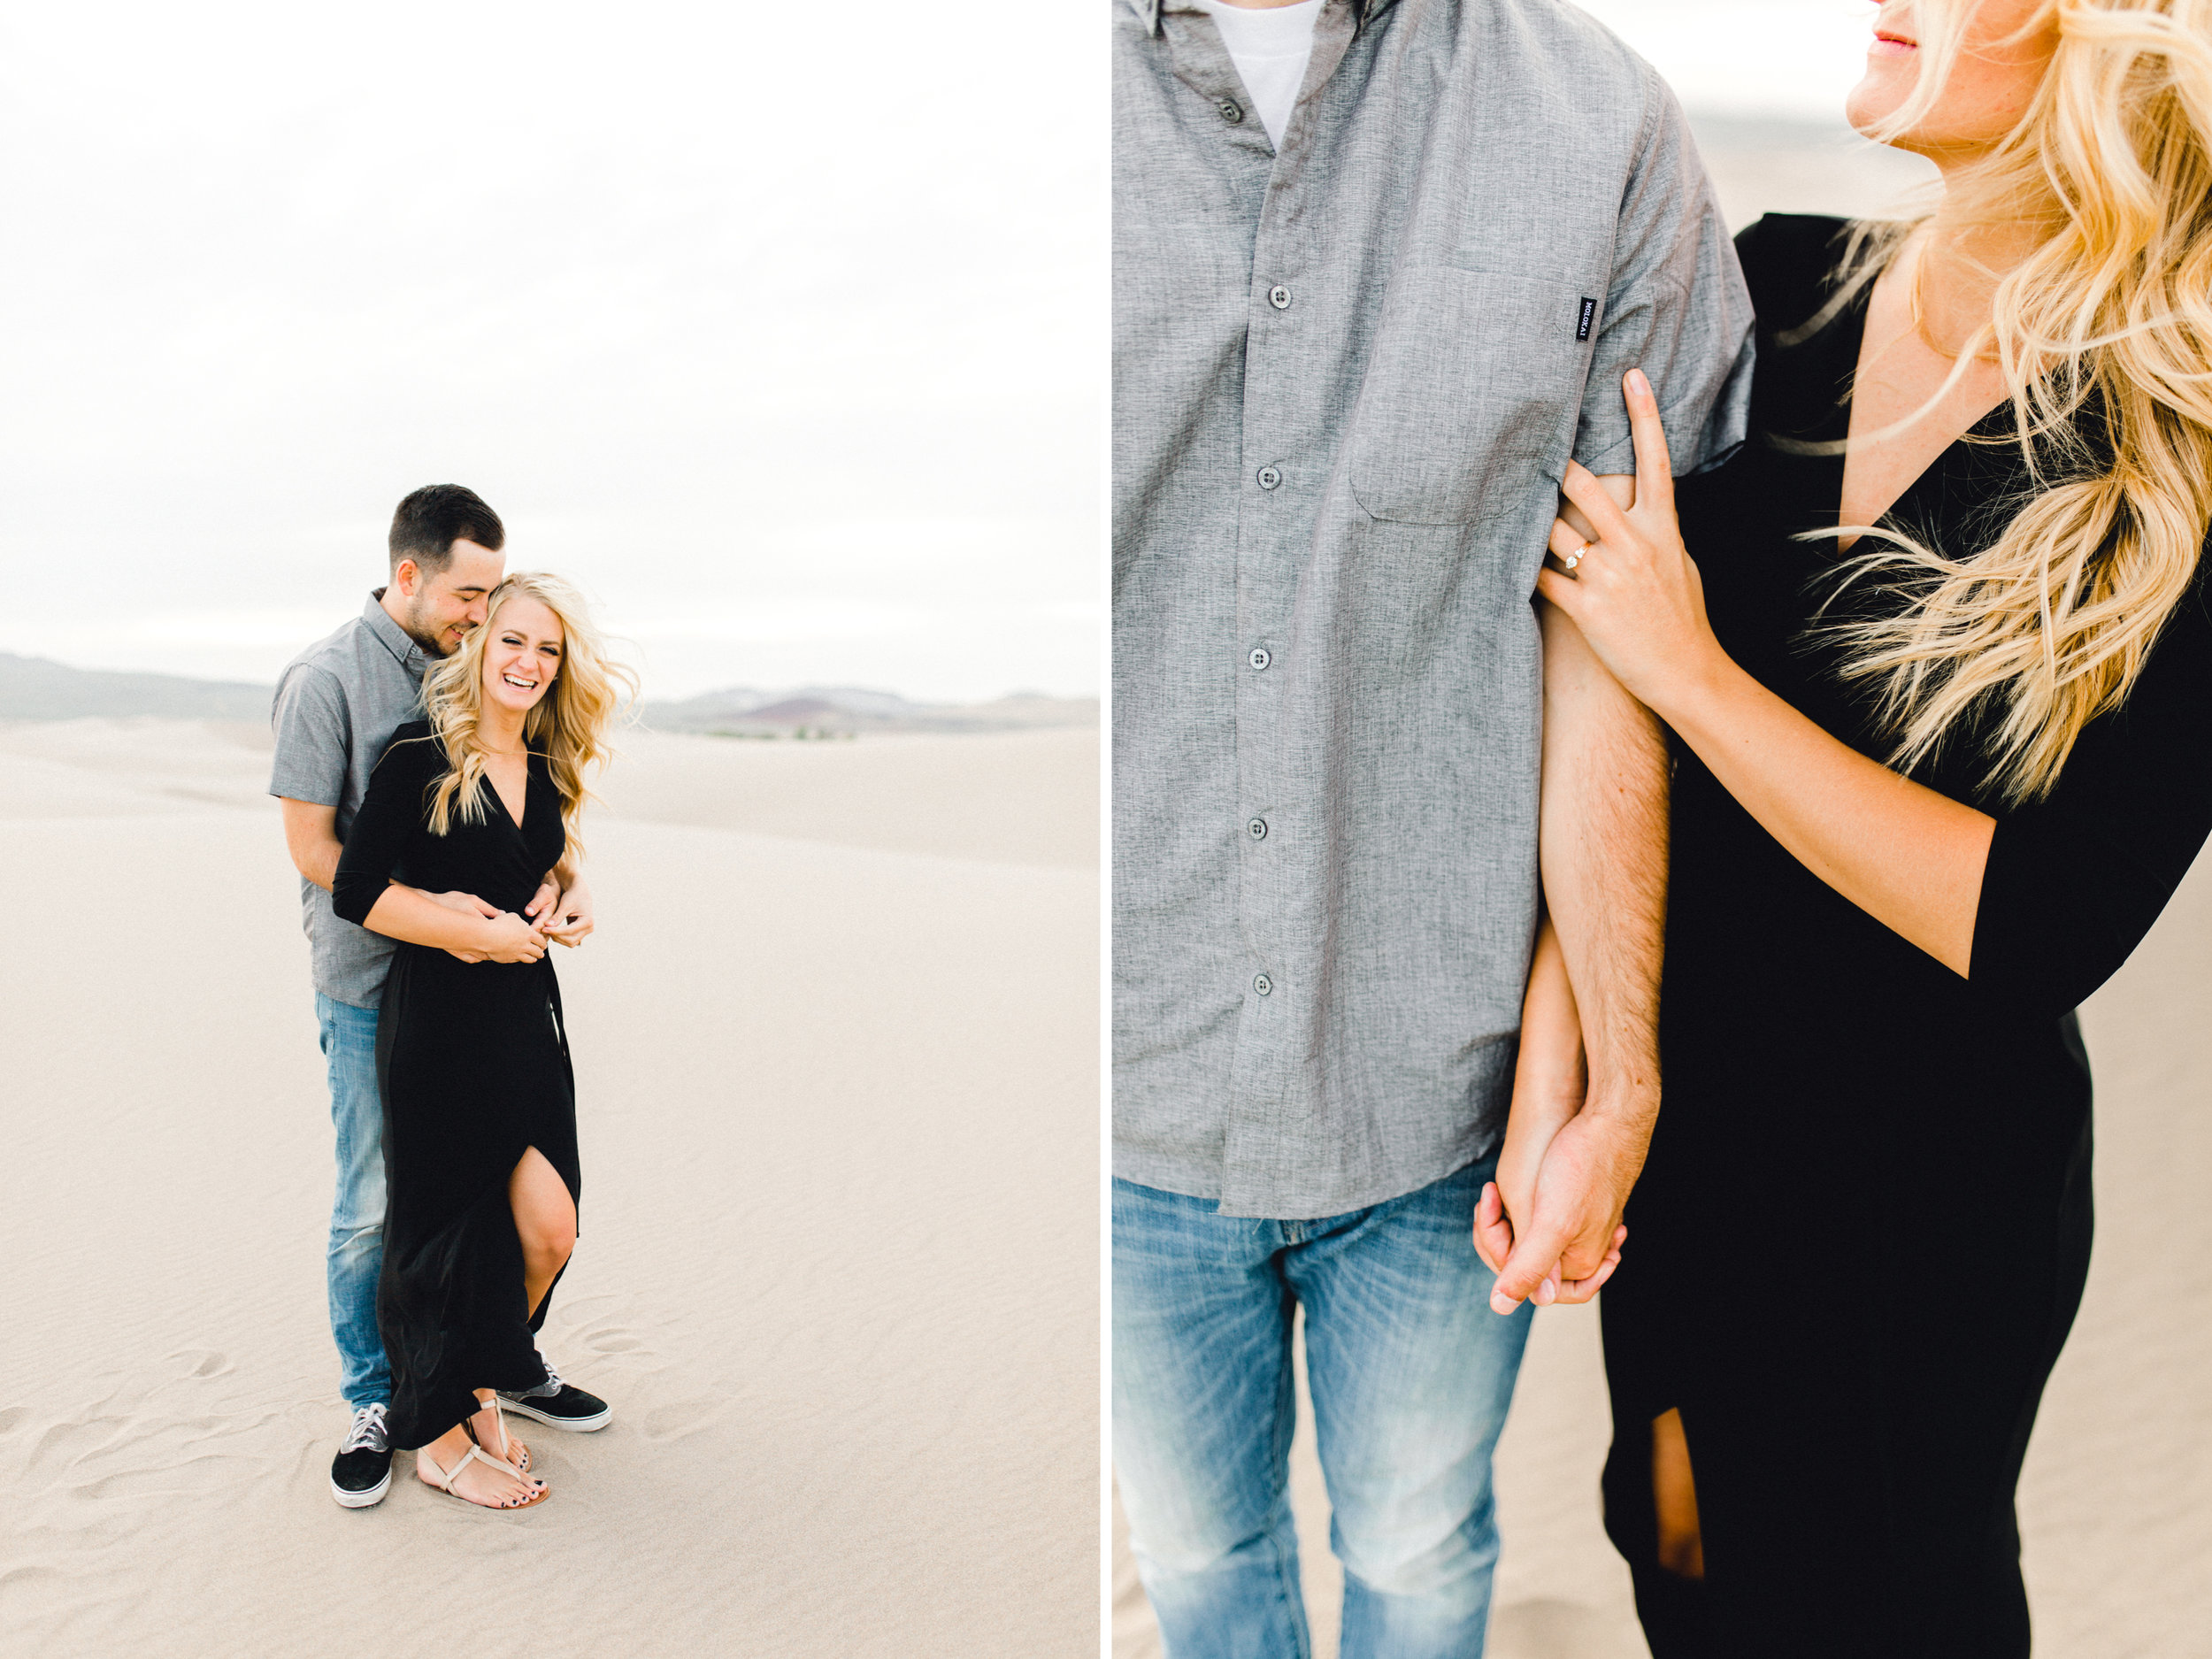 rexburg-idaho-sand-dunes-engagement-photographer-august-trevor4.jpg